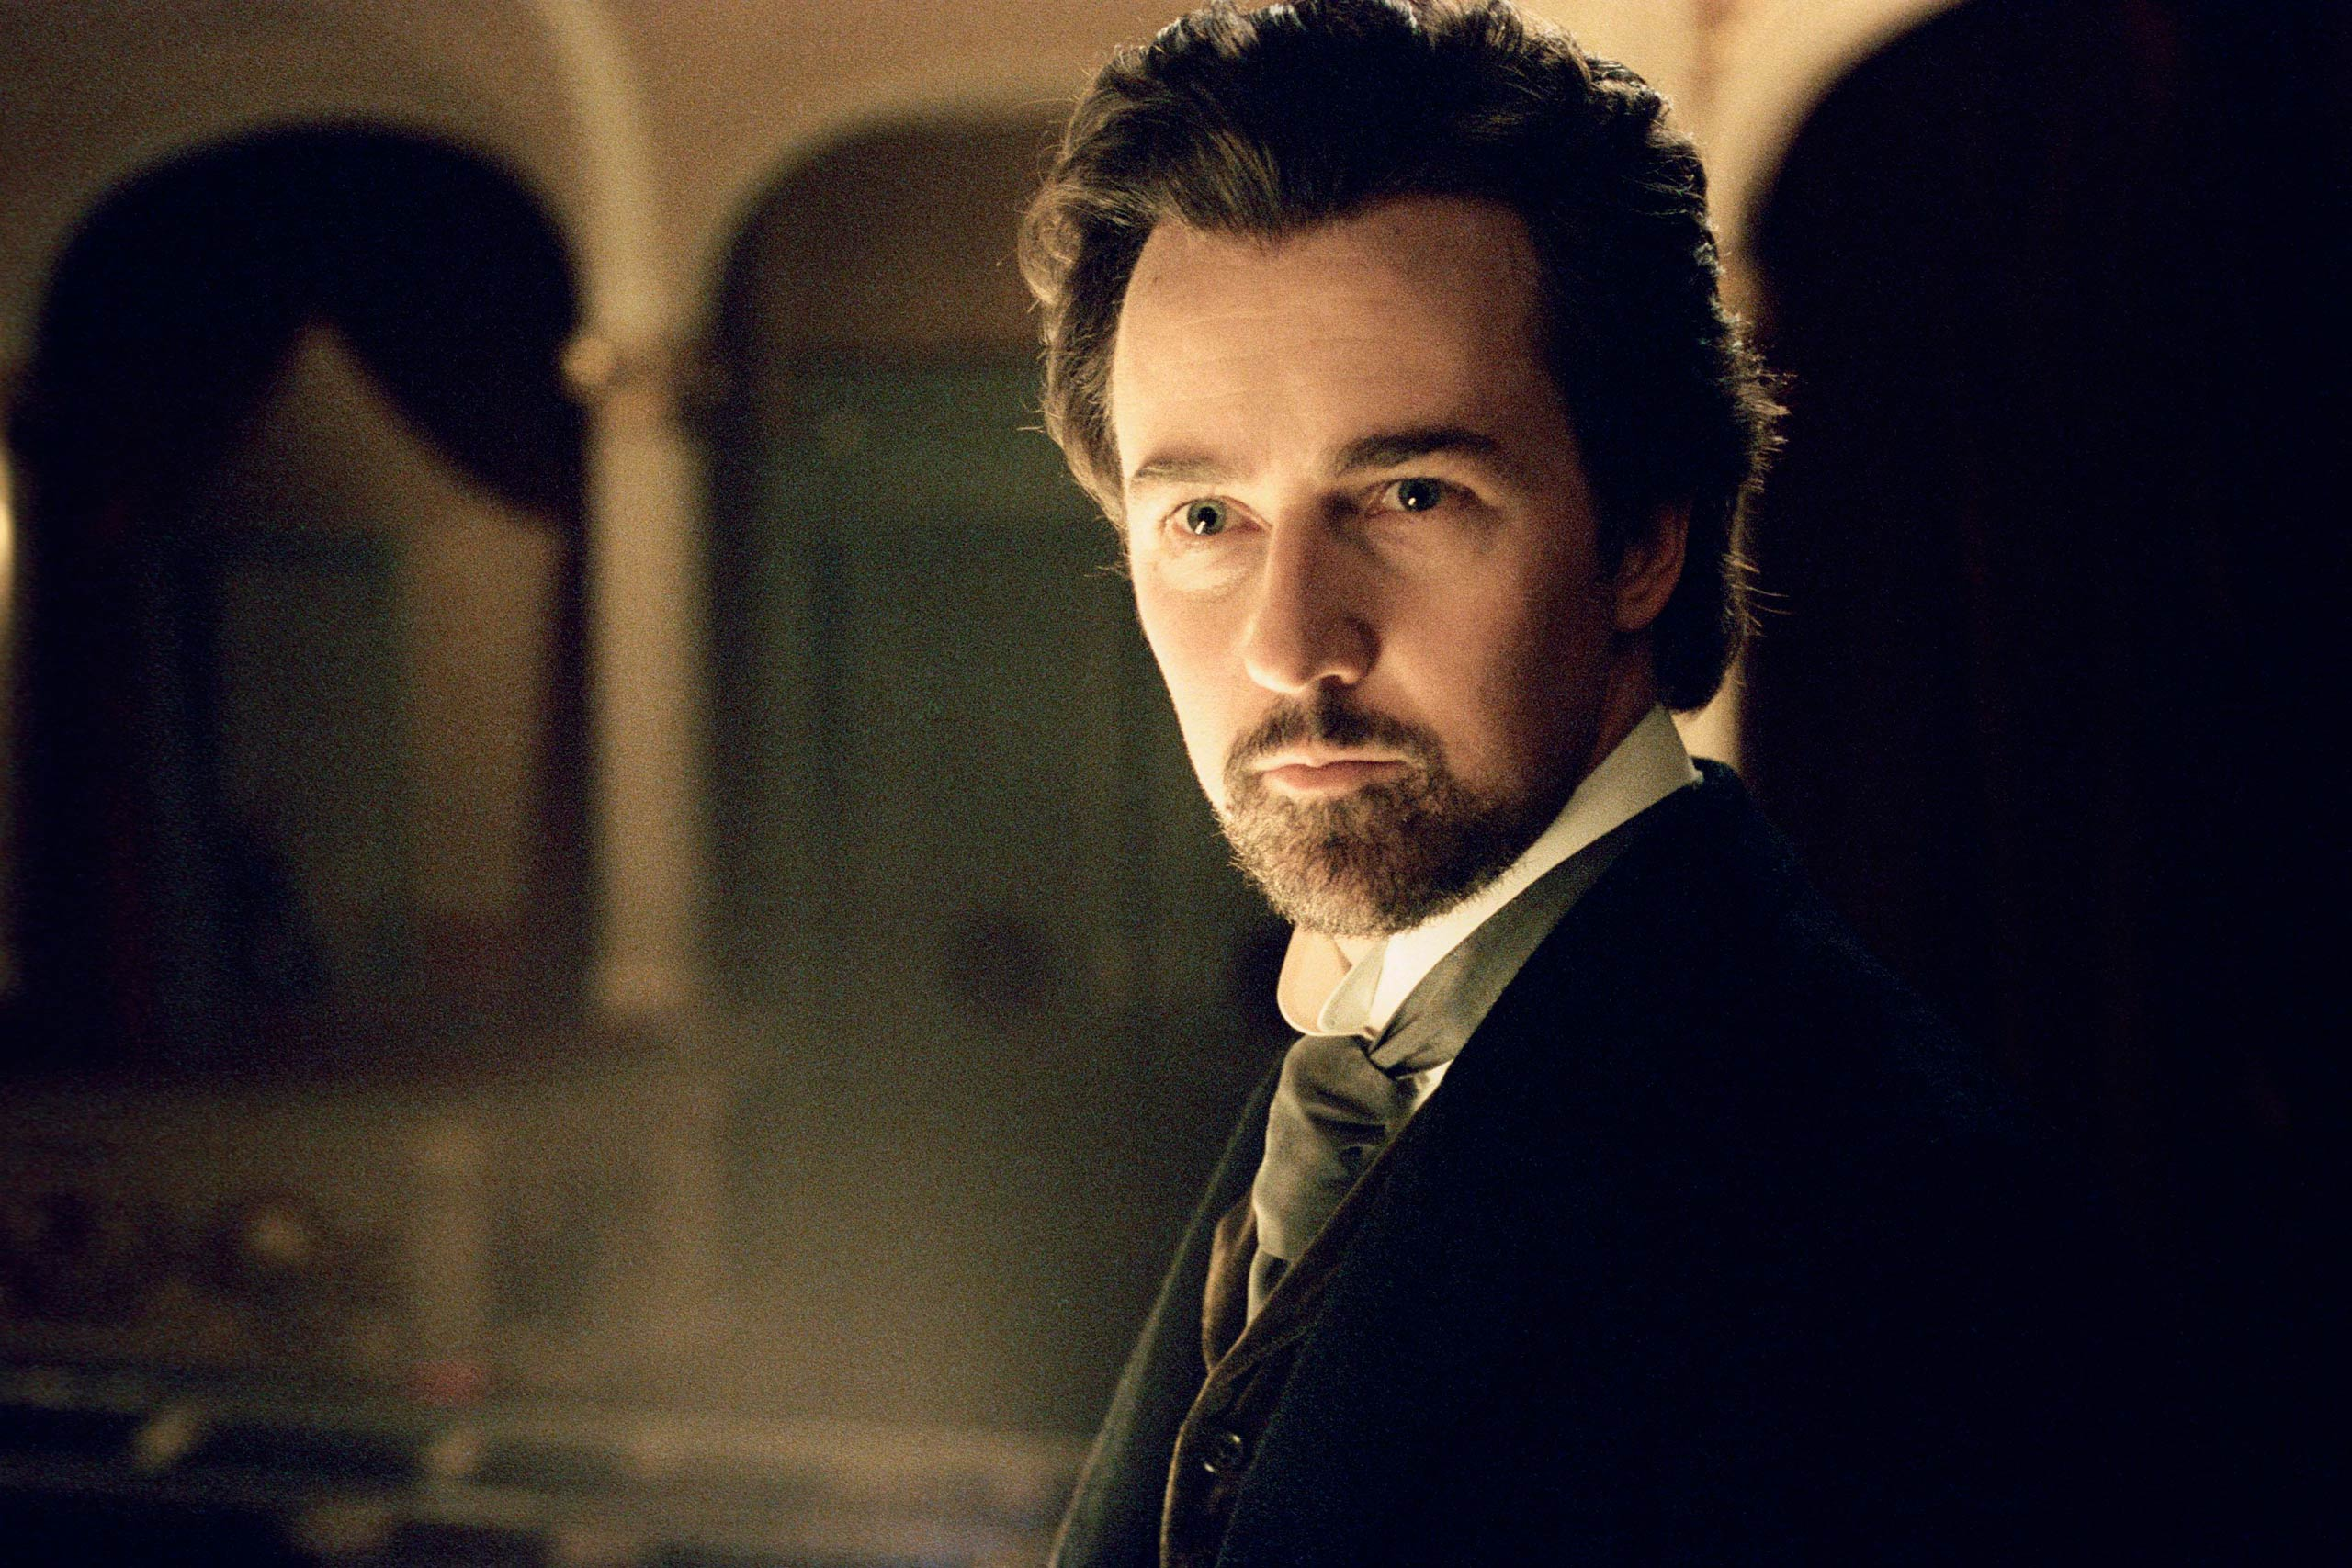 The Illusionist (CW)                                                              The Edward Norton film may have been set in 1889 Vienna, but the TV adaptation will take place in turn-of-the-century New York. It will follow a famous illusionist who returns home from prison to find his wife married to the mob boss who framed him for a crime.